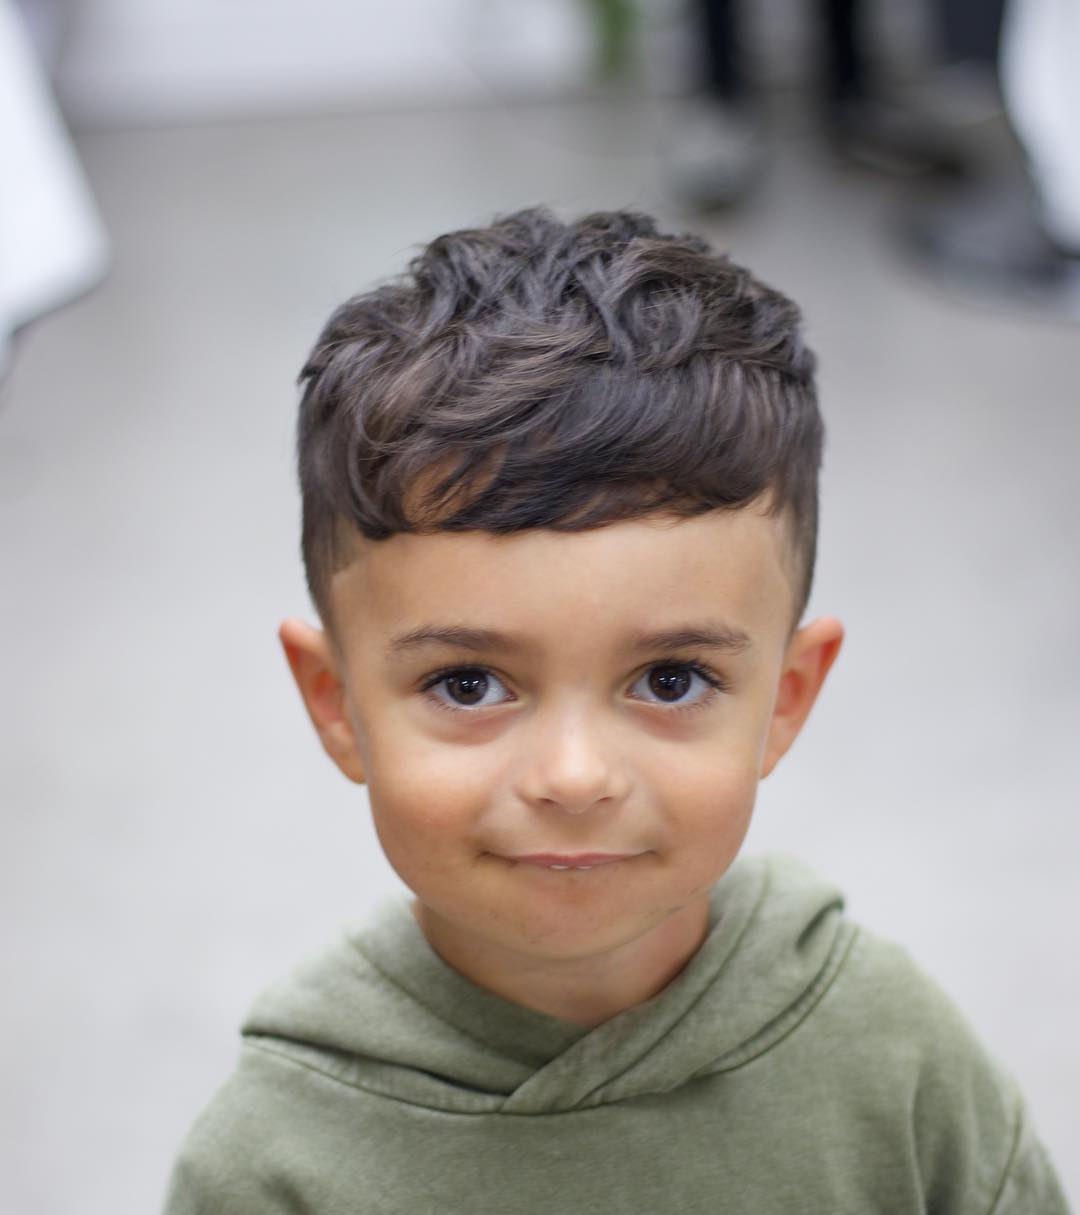 Haircuts for little boys